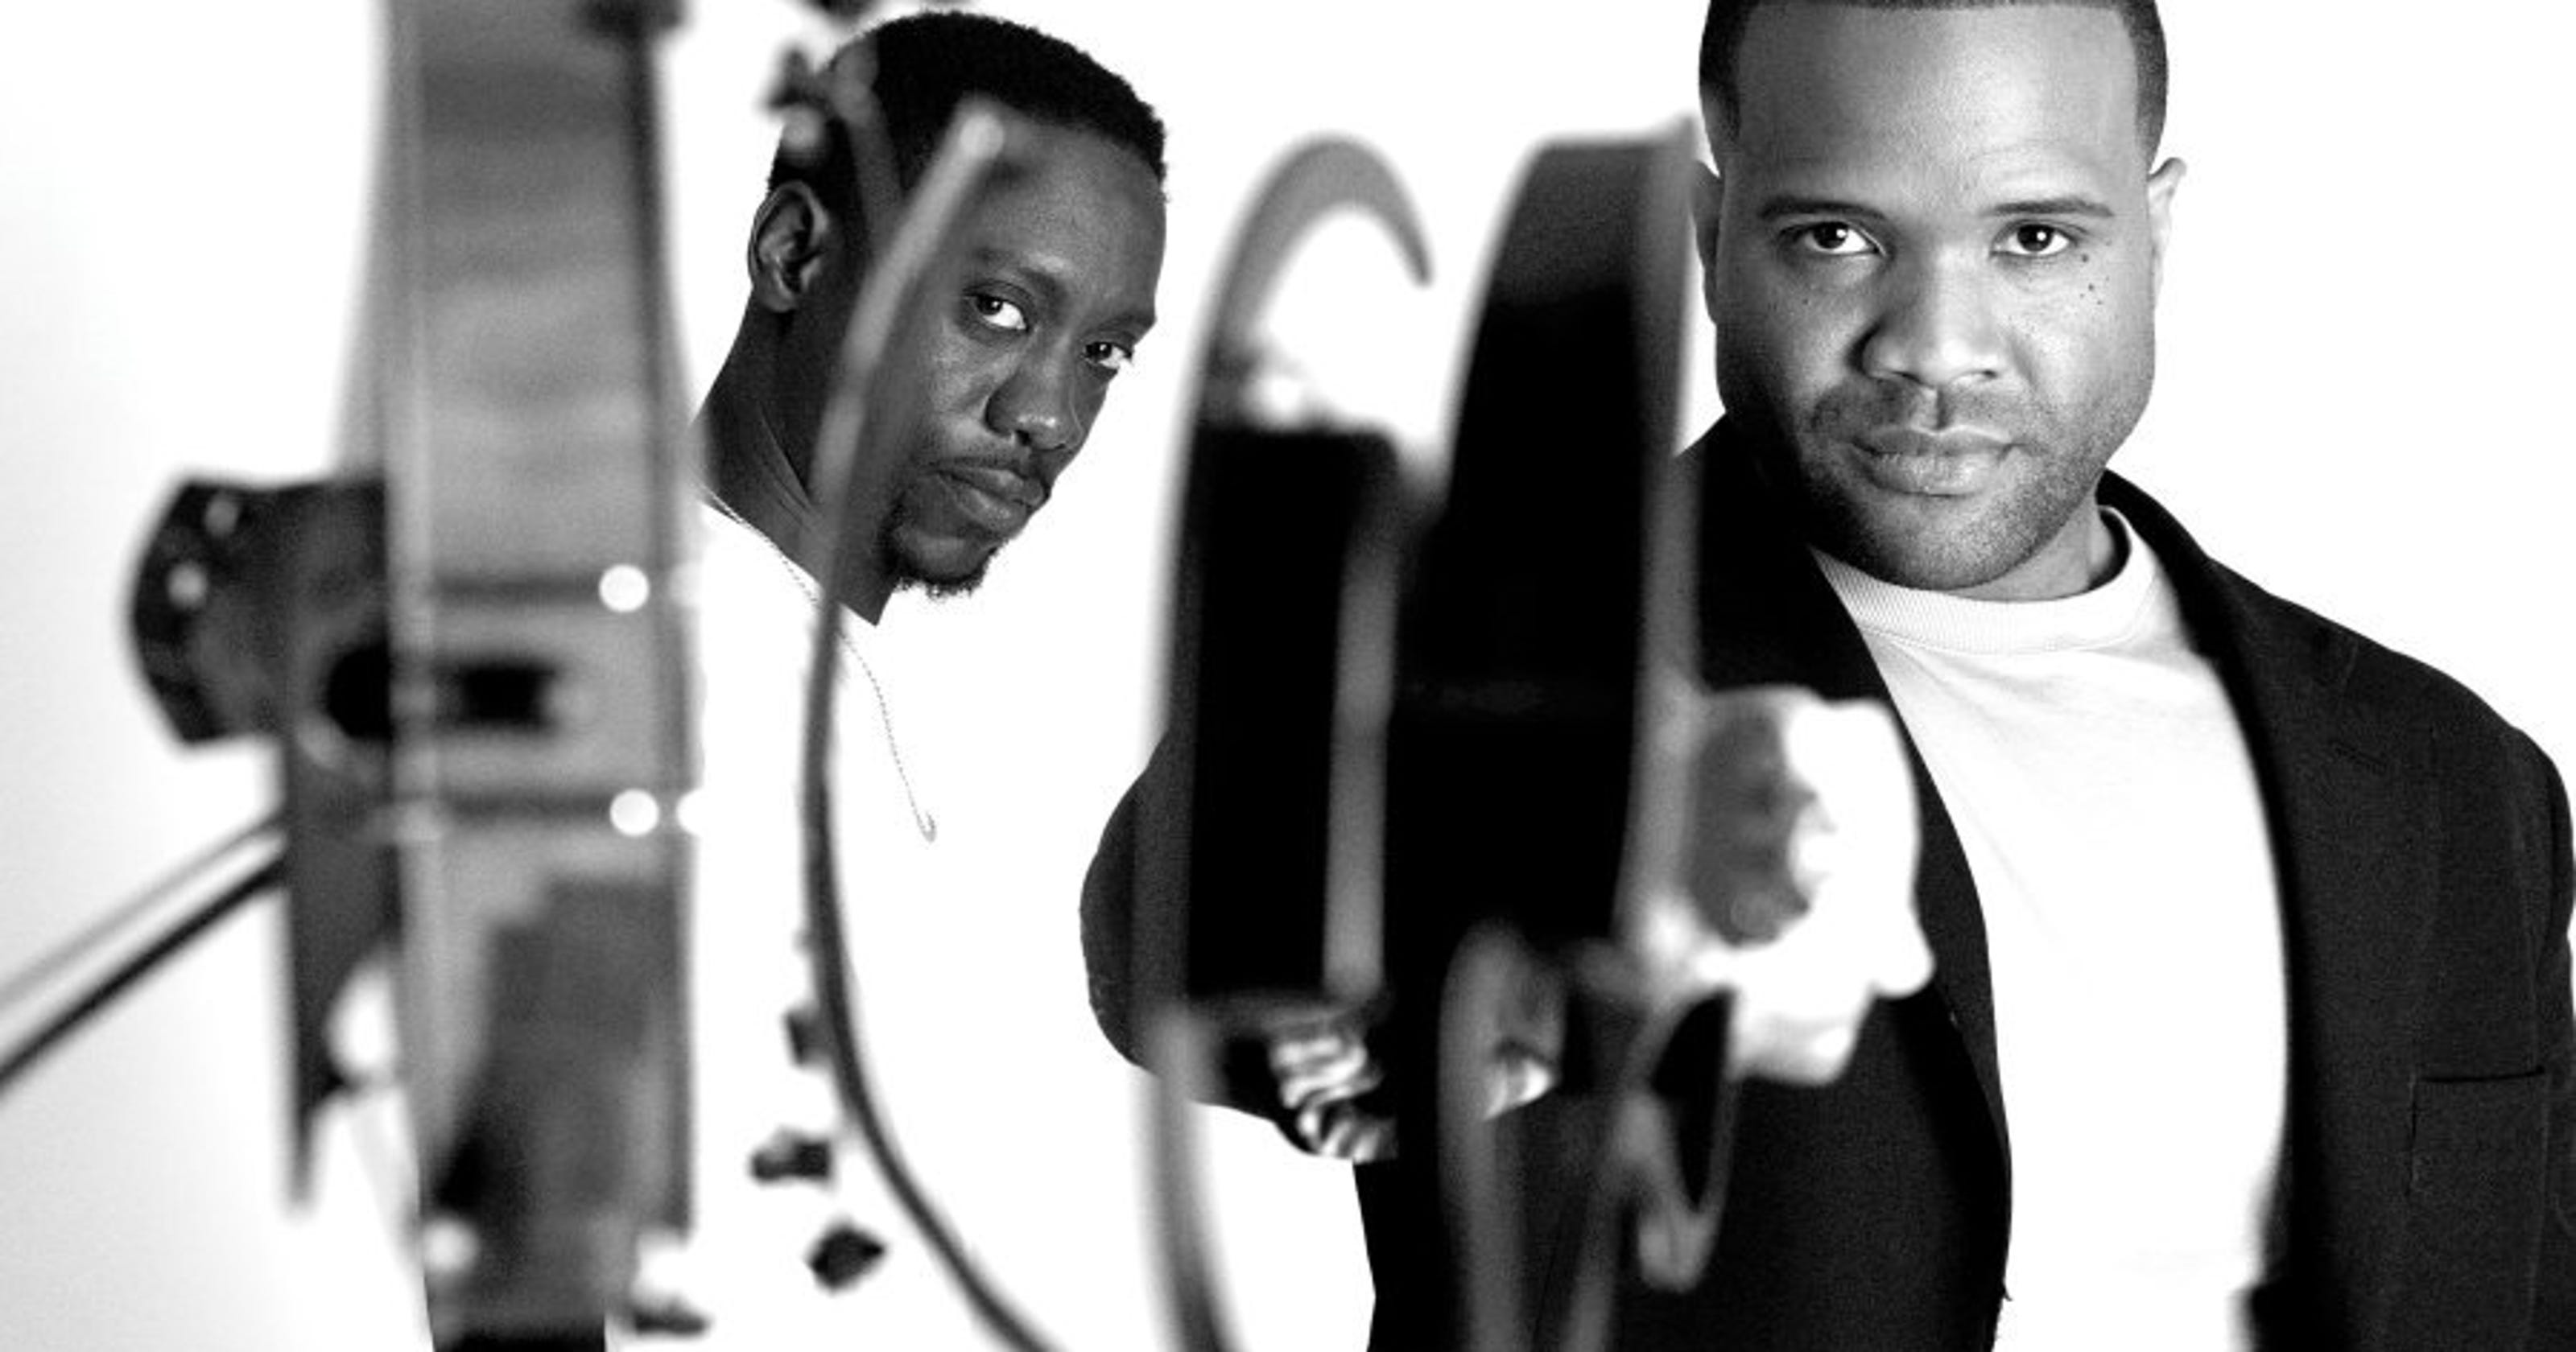 Black Violin smashing 'Stereotypes' through music